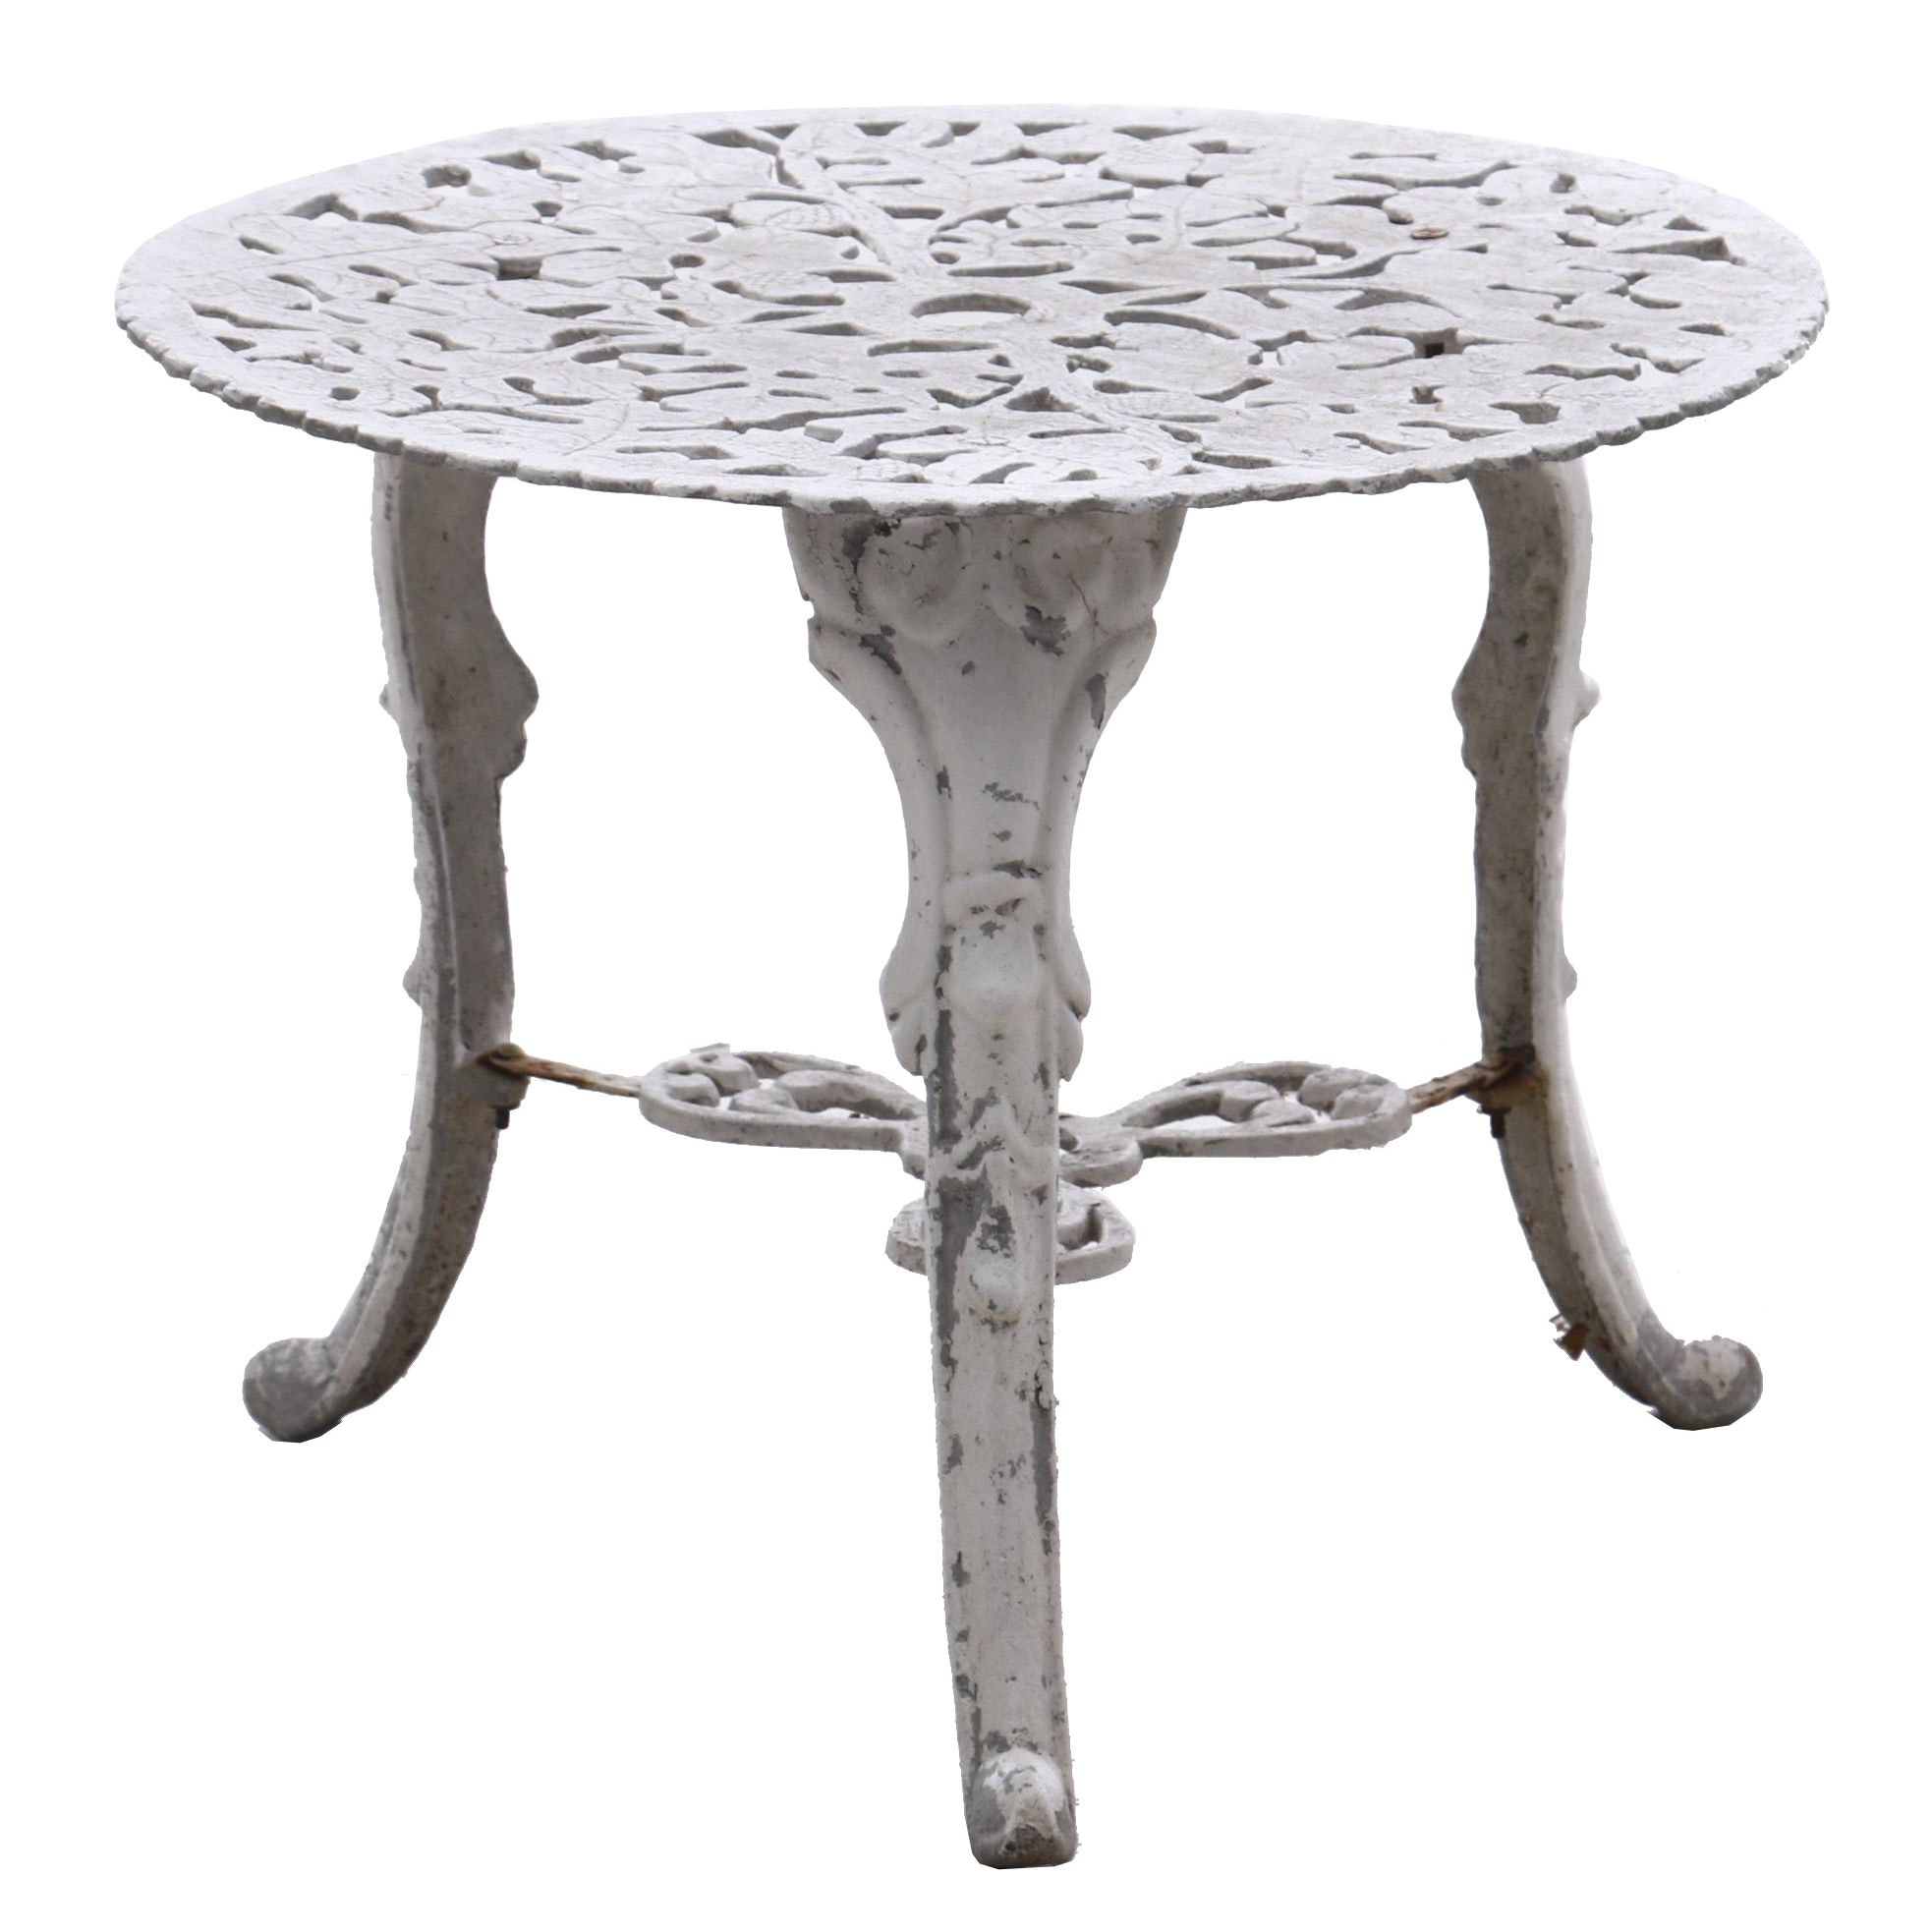 Wrought Iron Patio Side Table in White